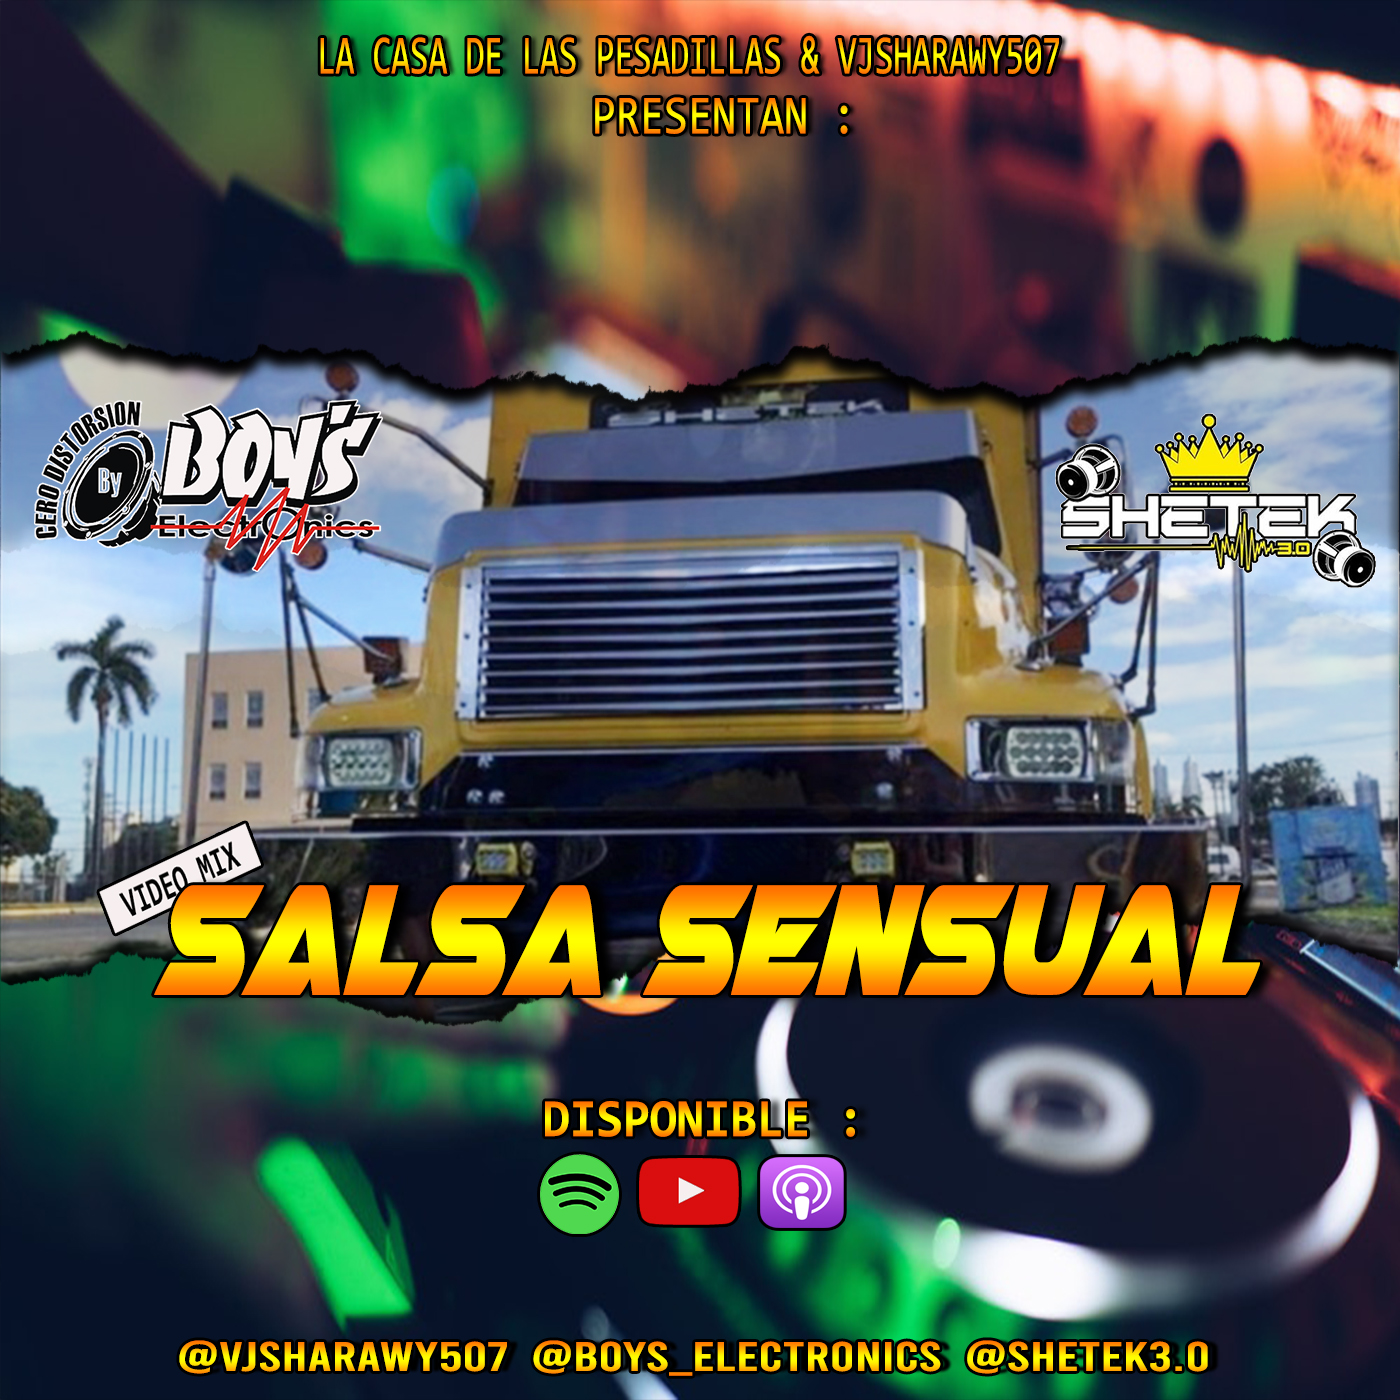 Salsa Sensual Video Mix By @VjSharawy507 Ft @Boys_electronics X @shetek3.0